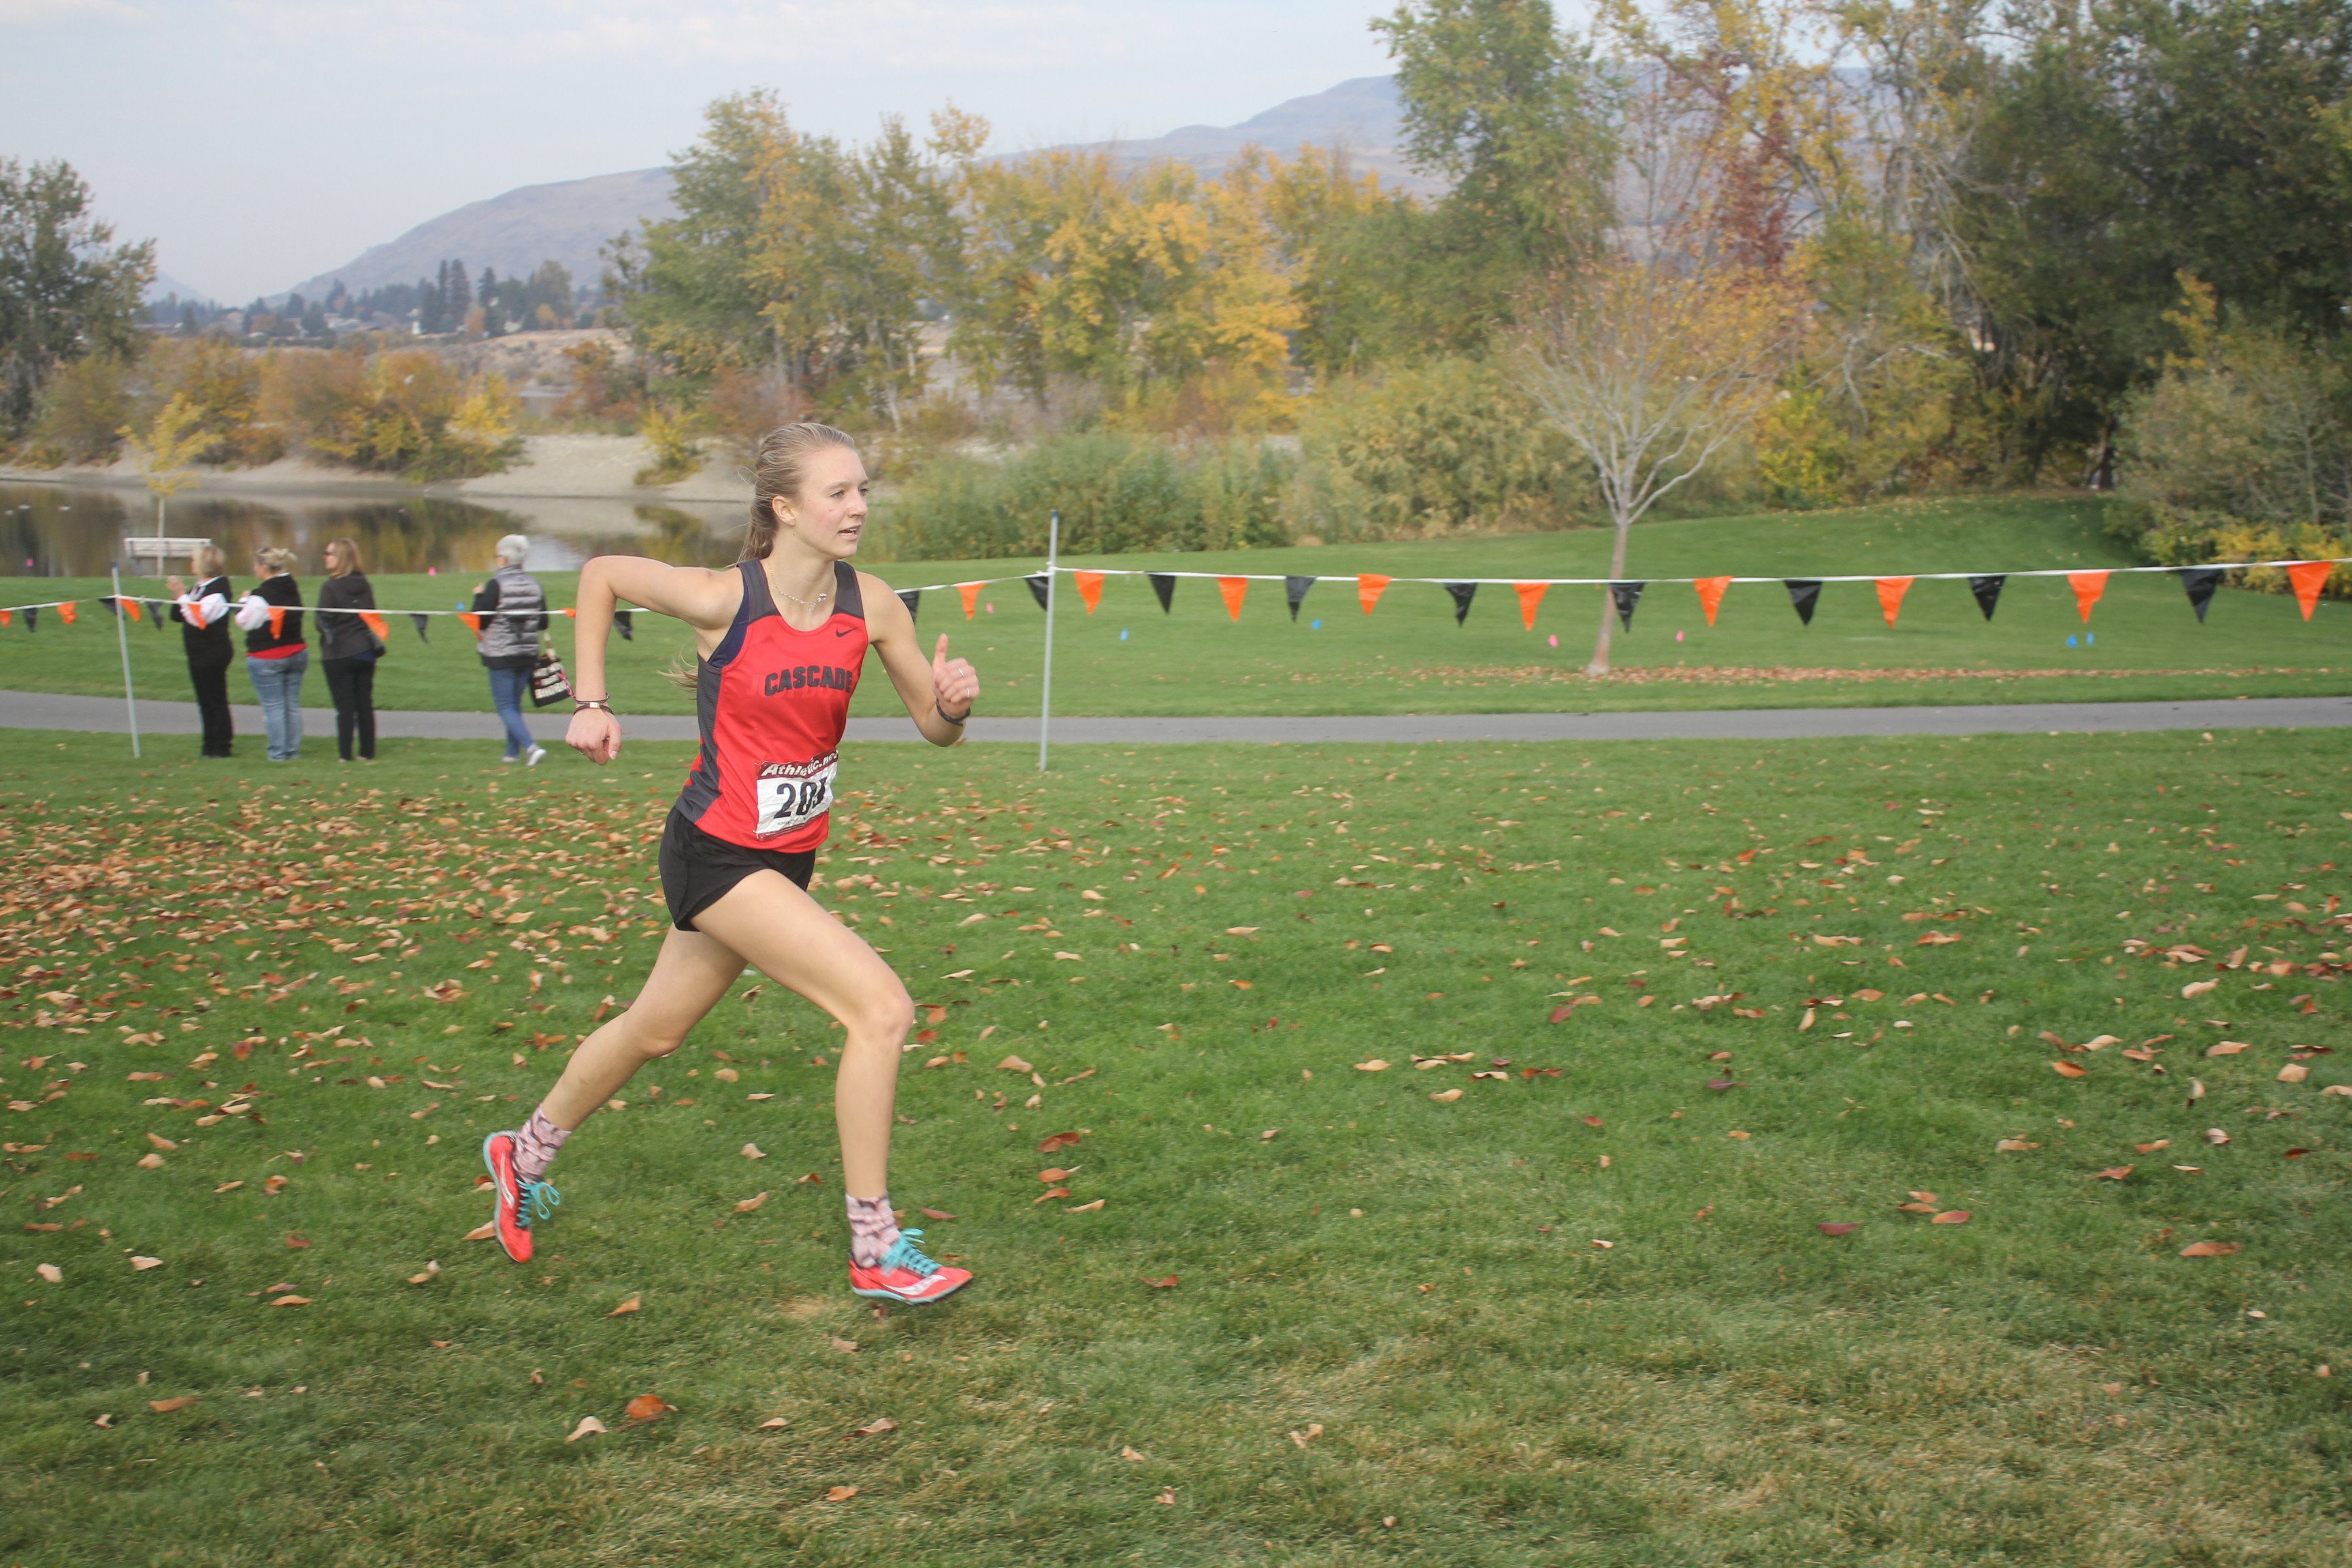 Zoe McDevitt is far ahead of her competition as she takes first place.